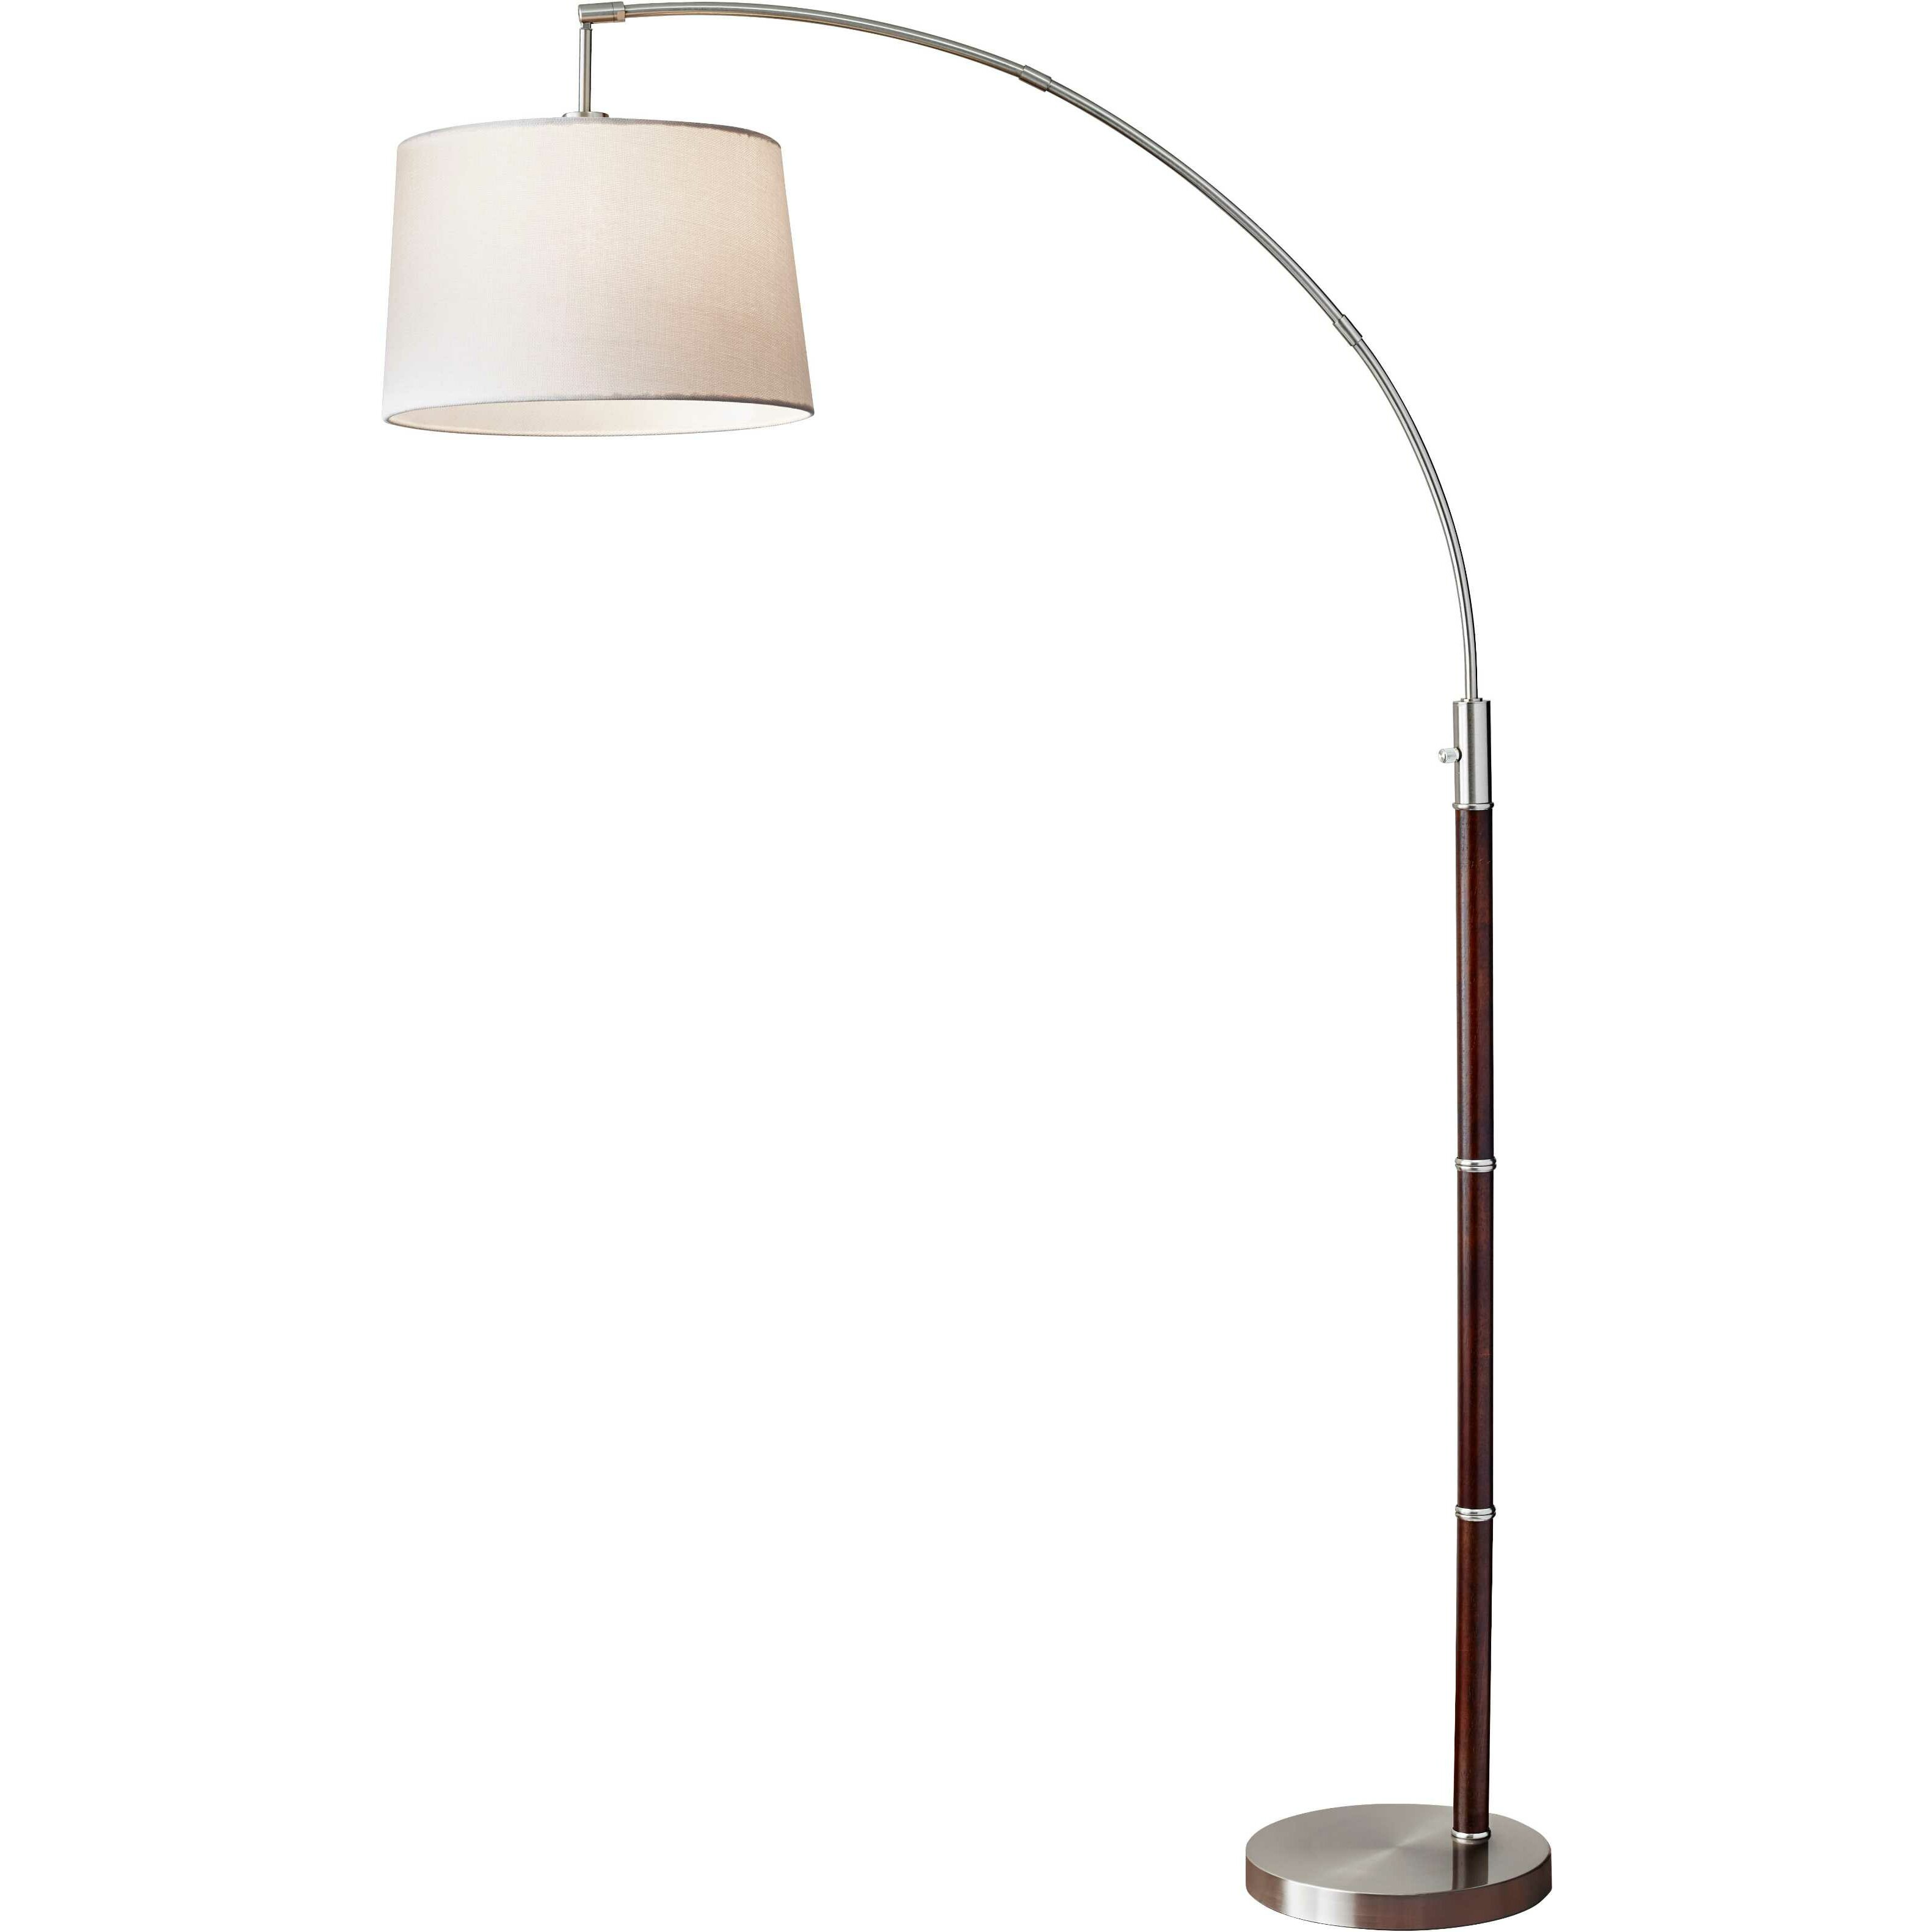 Wildon home alison 80 5 arched floor lamp reviews for Arch floor lamps for living room